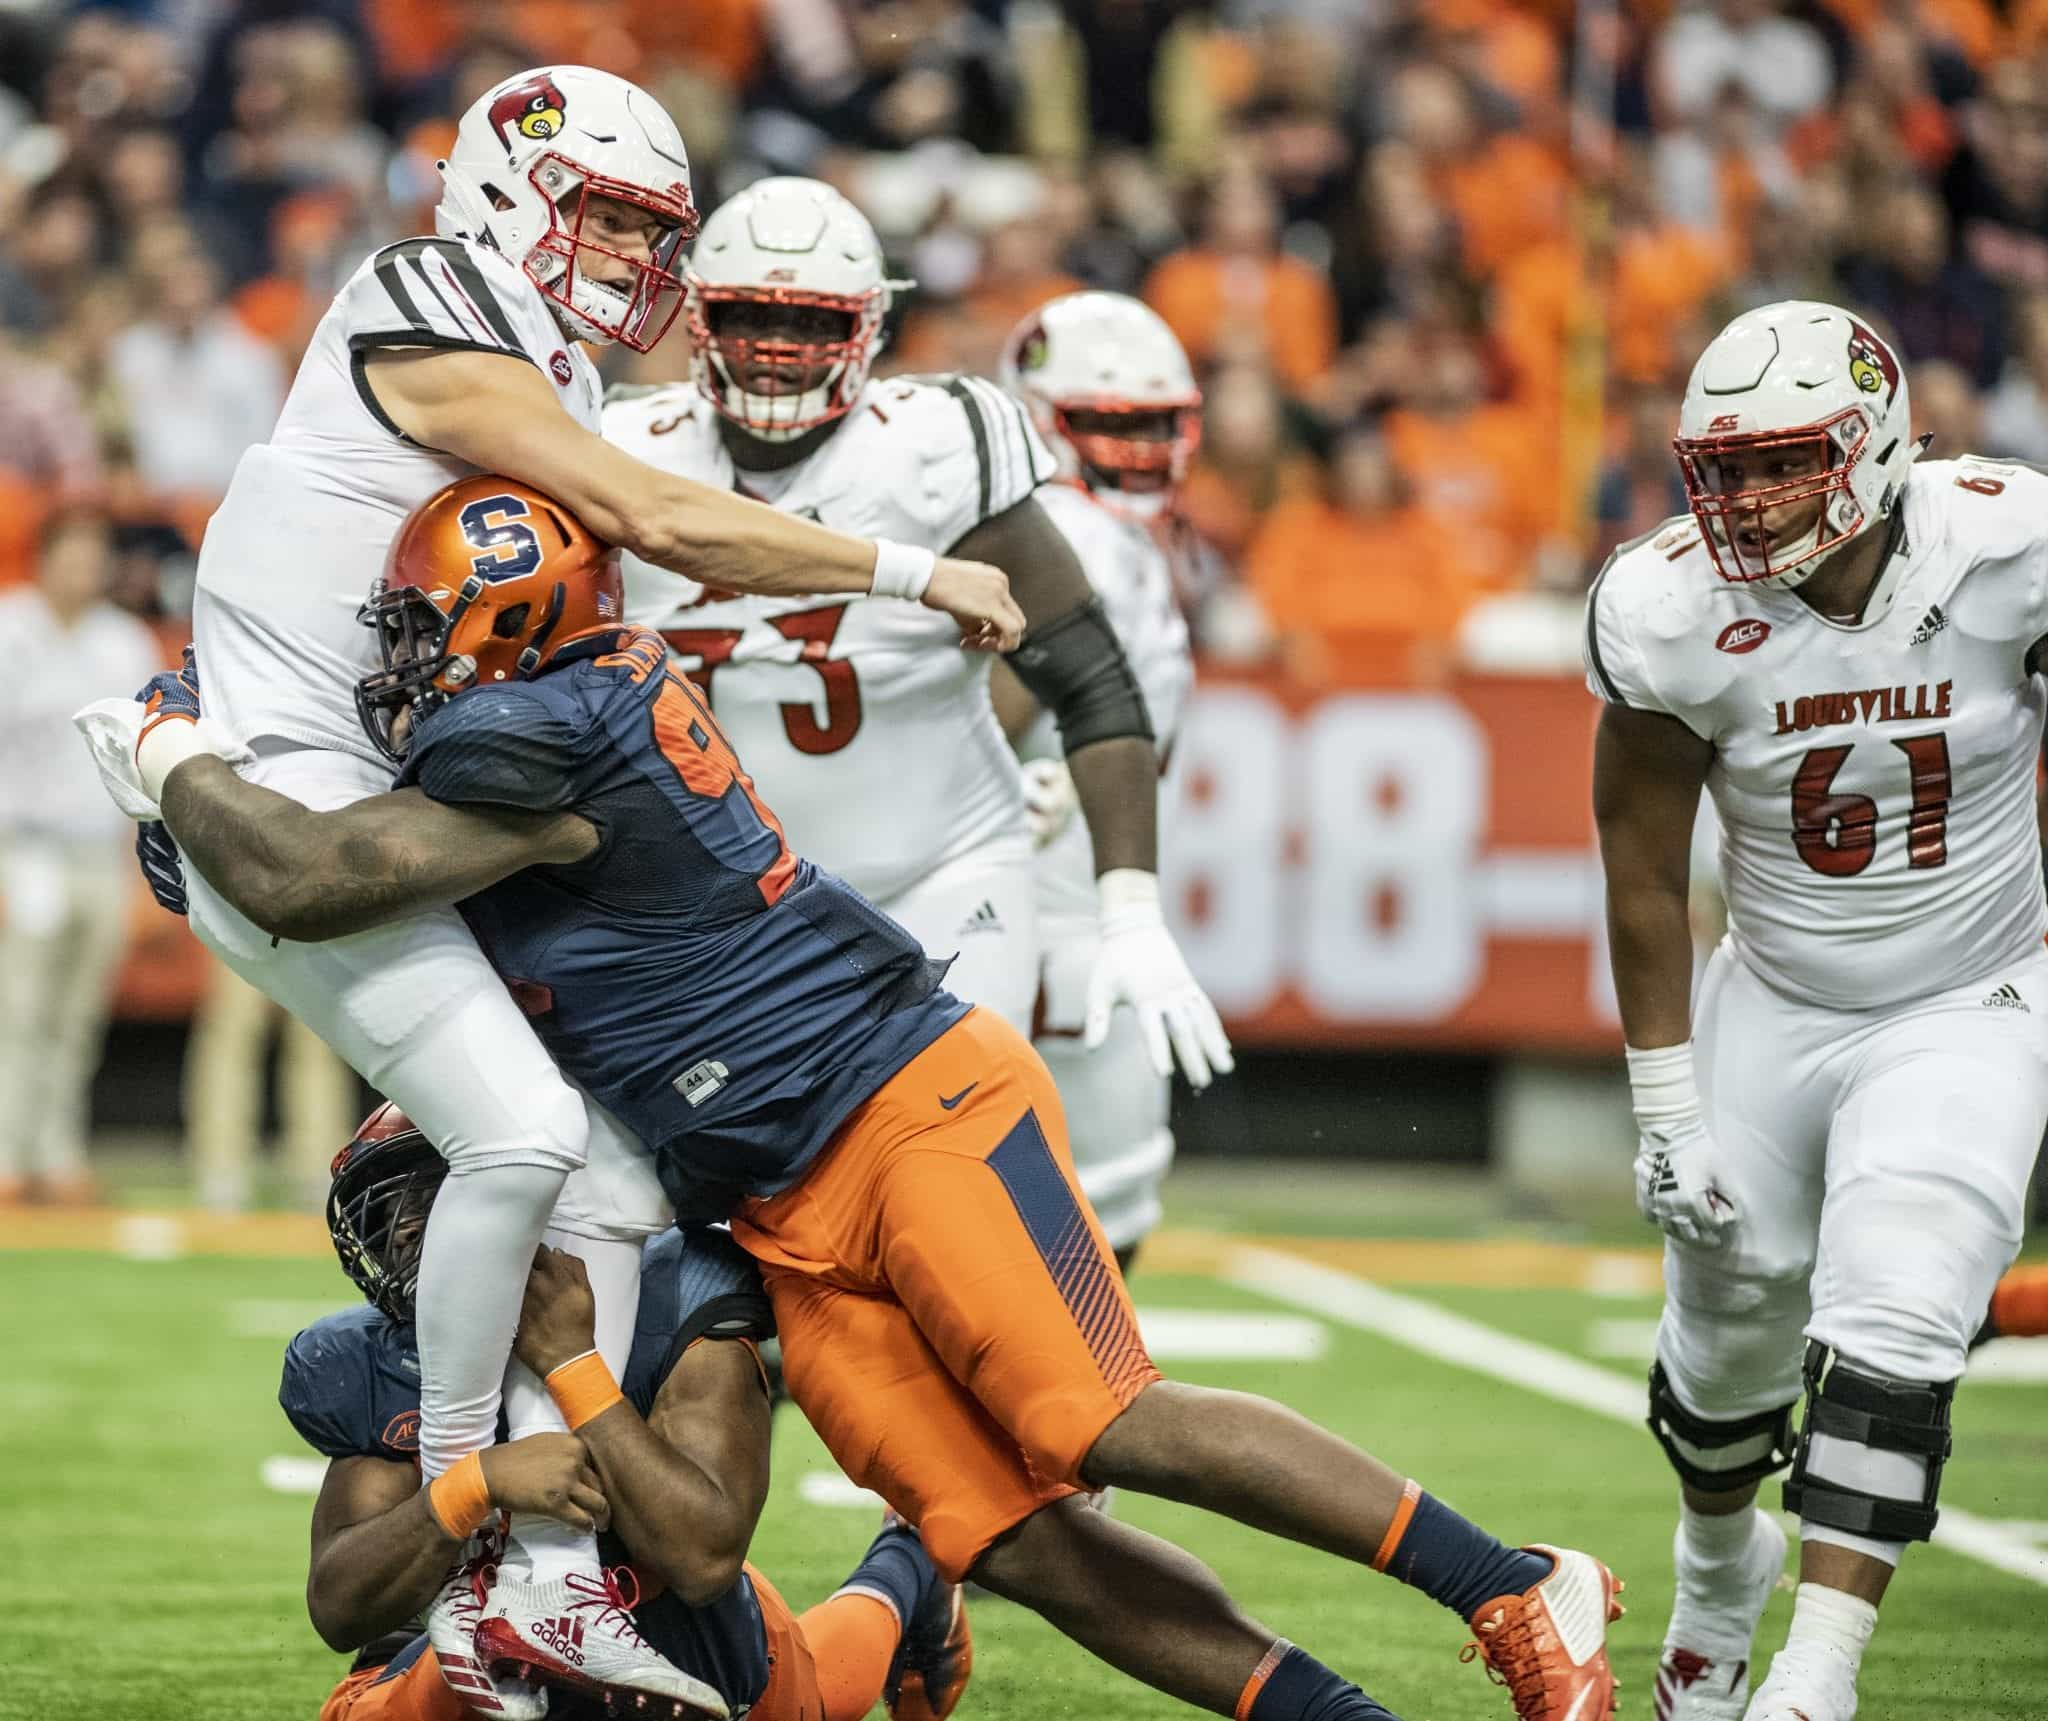 SU vs Louisville: Cardinals quarterback Sean McCormack gets hammered by SU Orange D-linemen Chris Slayton and McKinley Williams